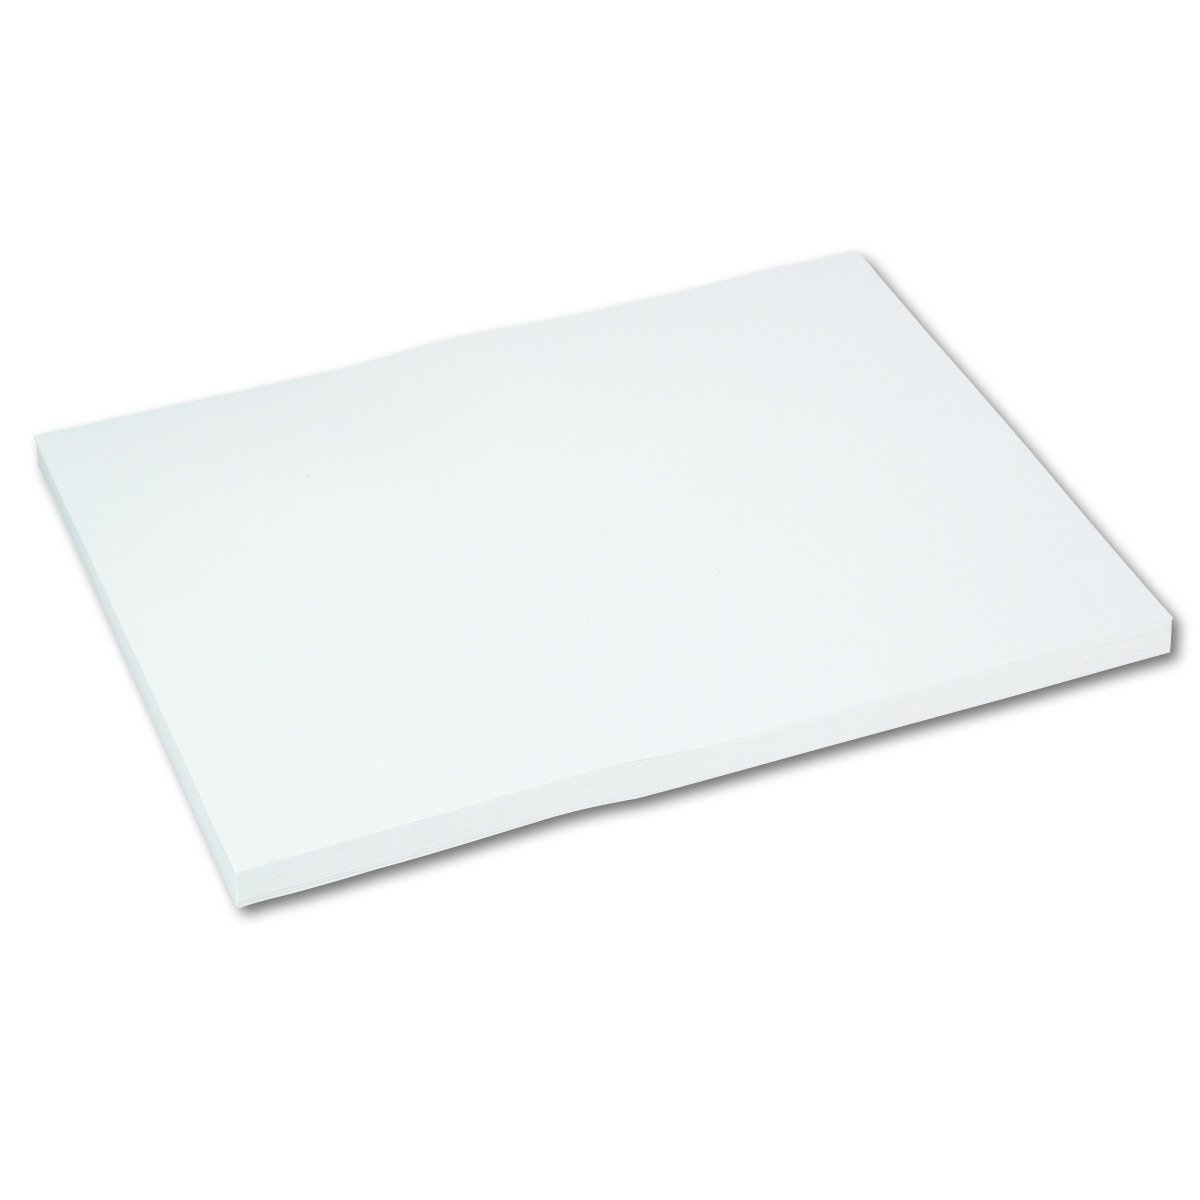 Pacon 5290 Medium Weight Tagboard, 24 x 18, White (Pack of 100)